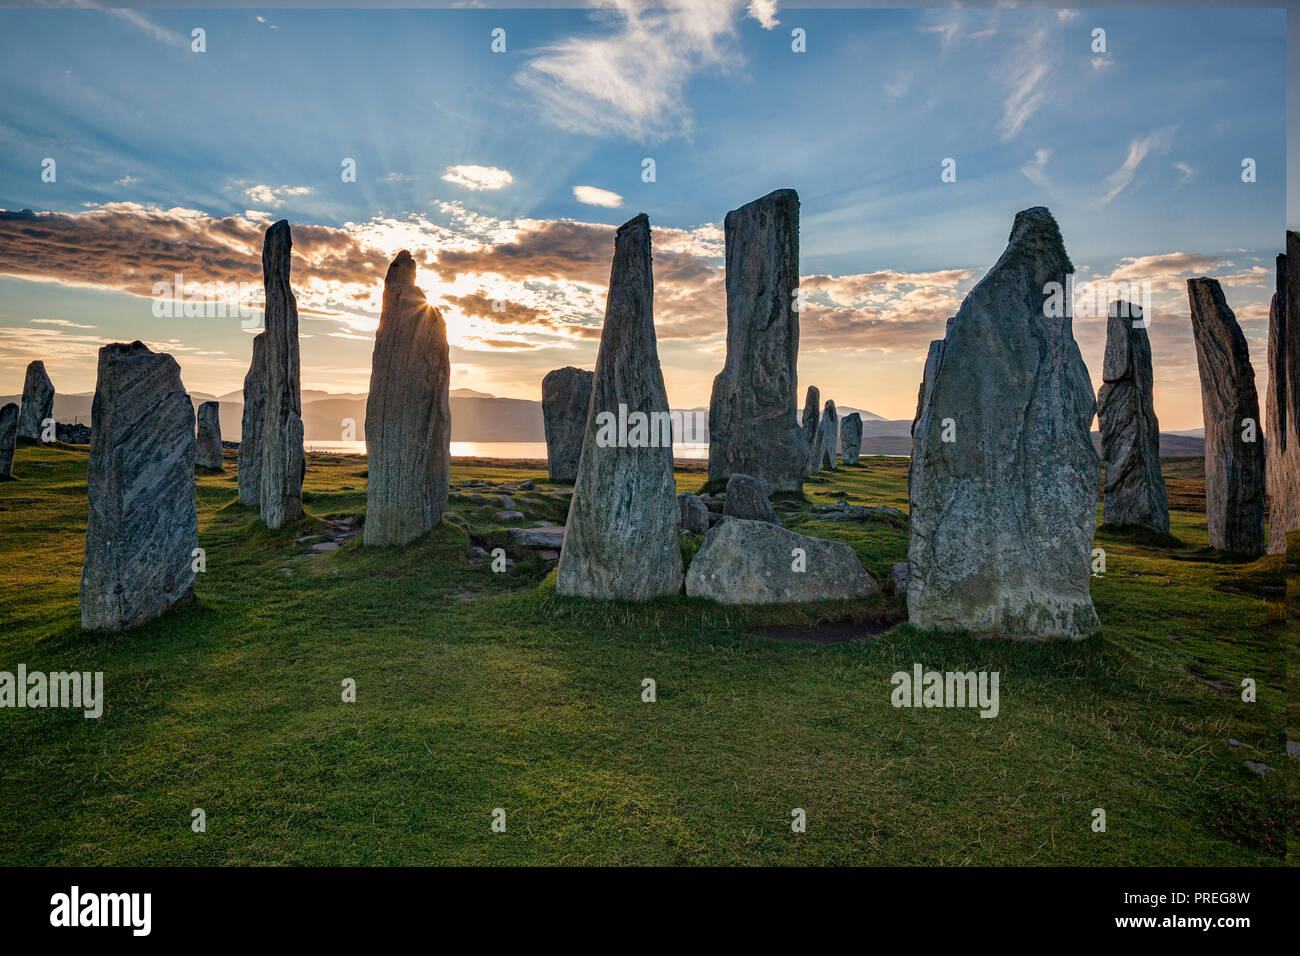 Autumn evening at the stone circle at Callanish, Isle of Lewis, Western Isles, Outer Hebrides, Scotland, UK Stock Photo